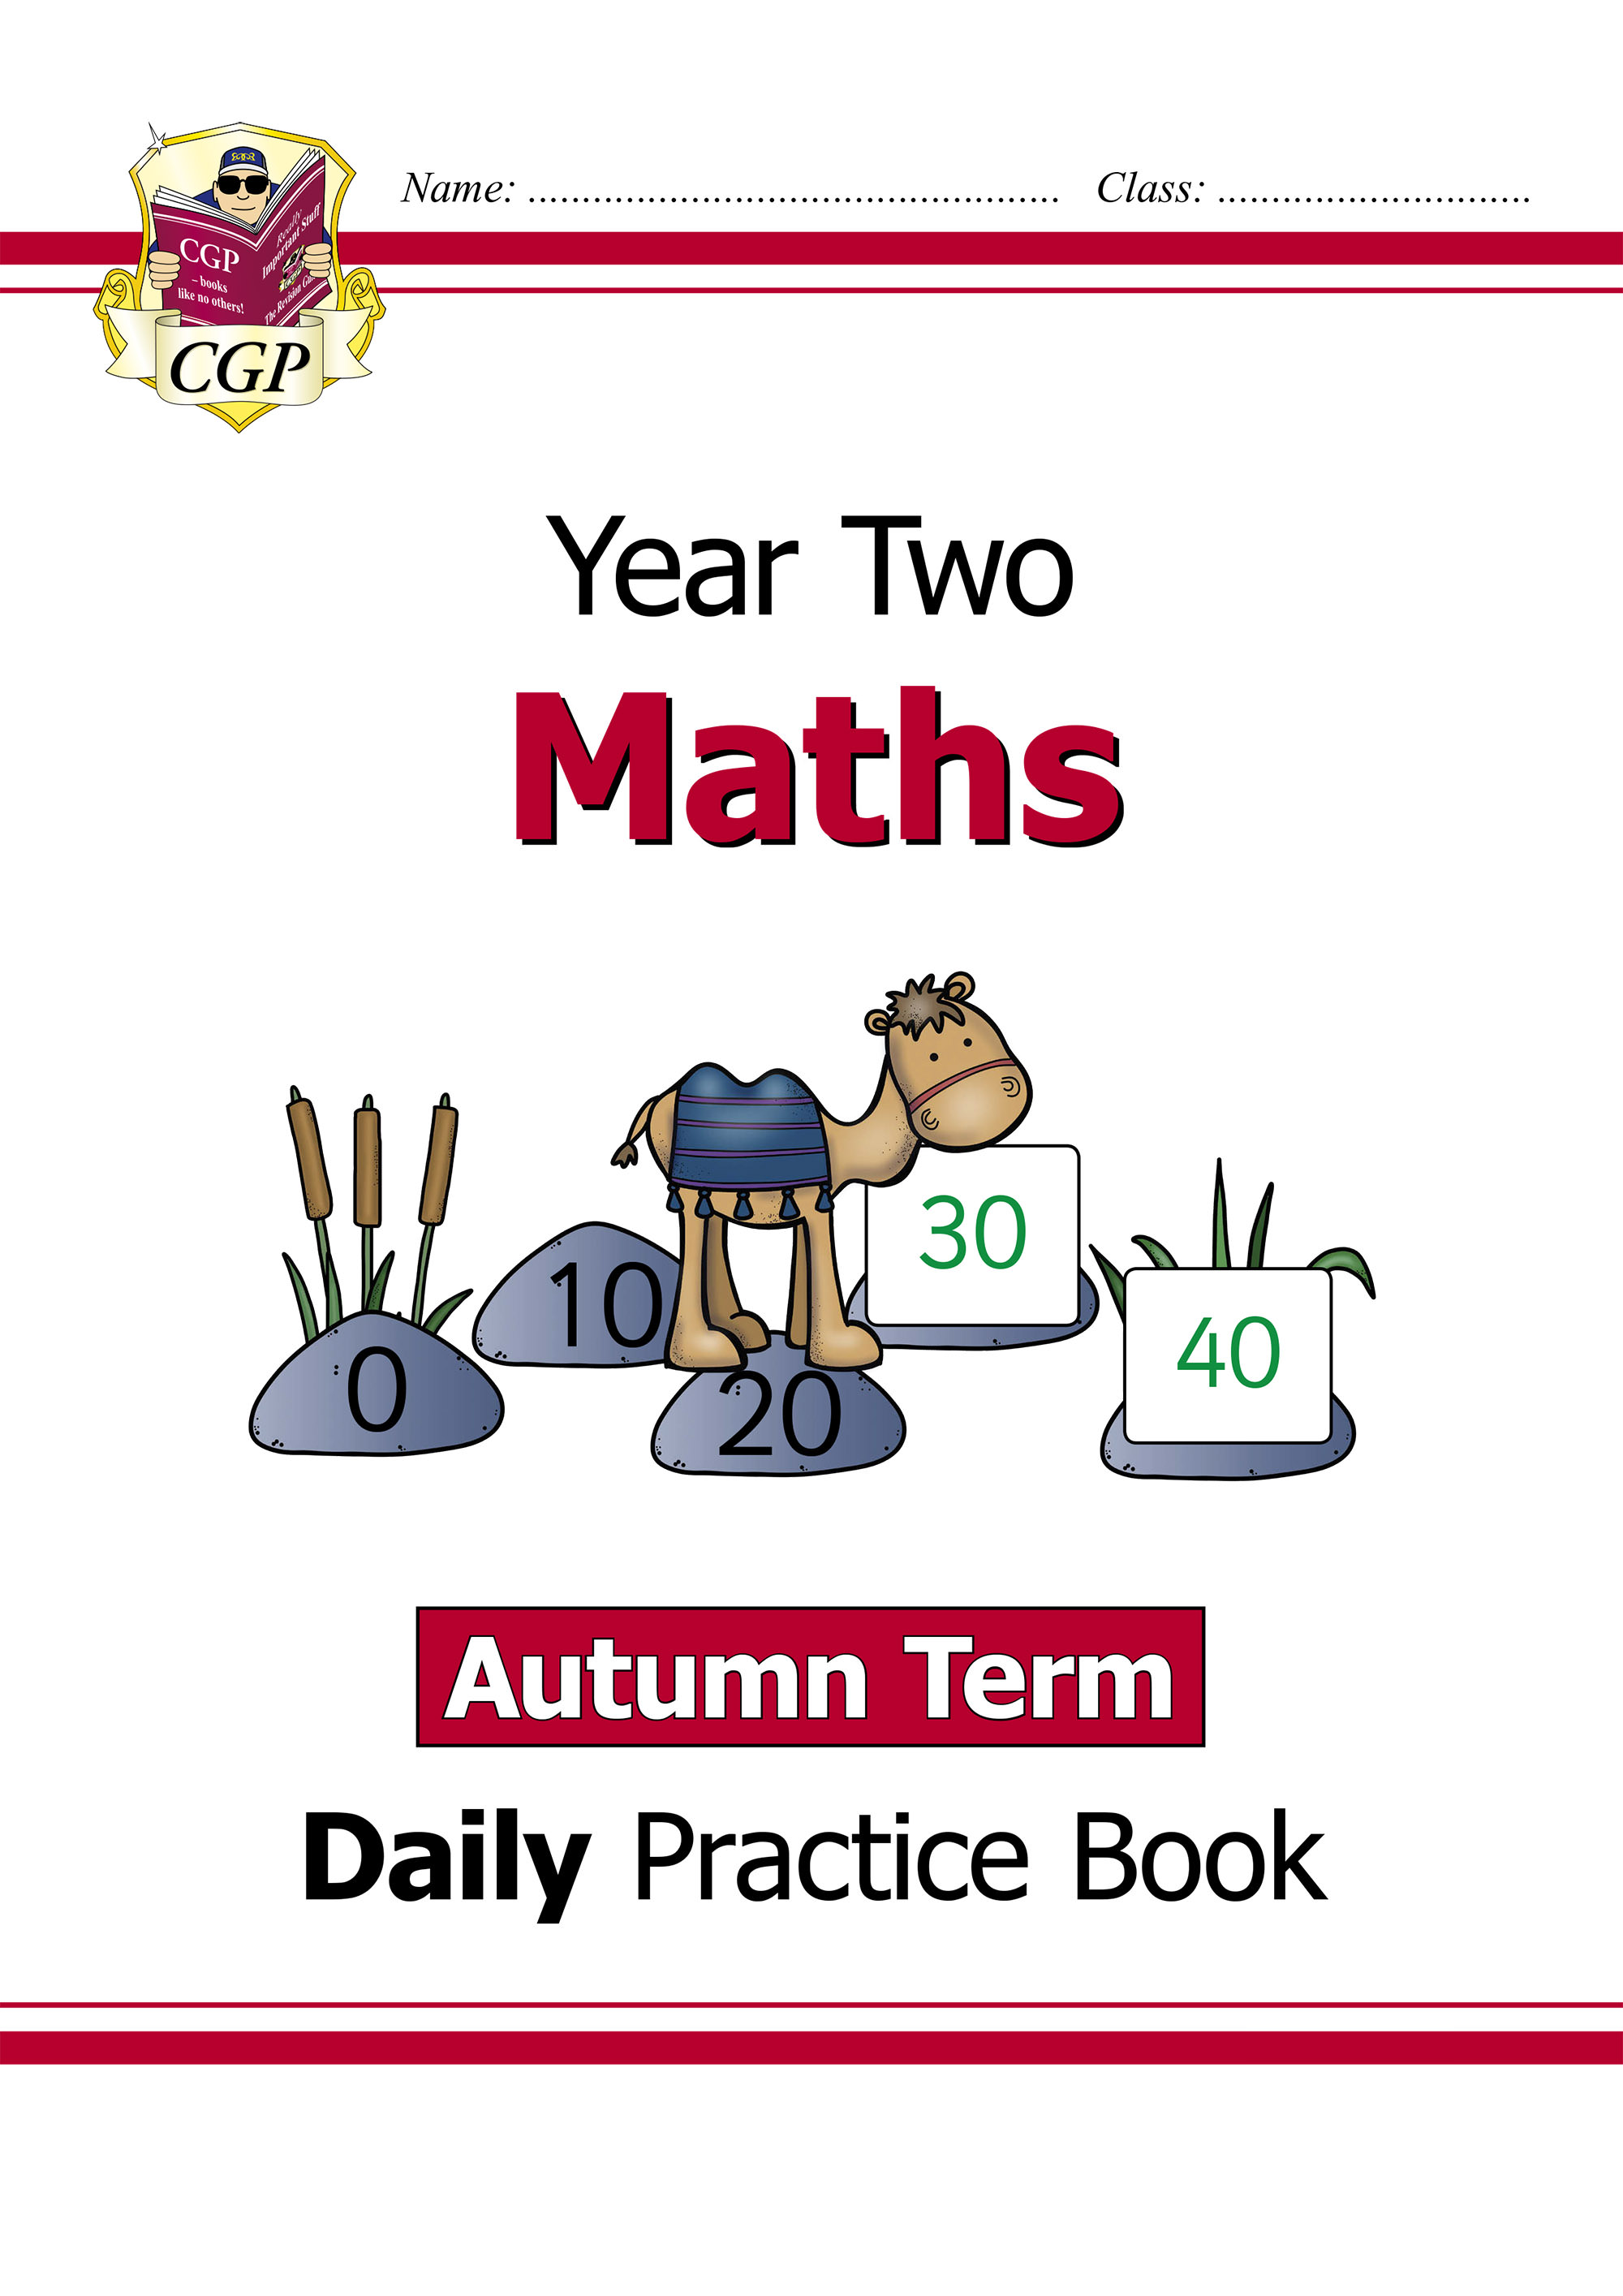 M2WAU11D - New KS1 Maths Daily Practice Book: Year 2 - Autumn Term Online Edition